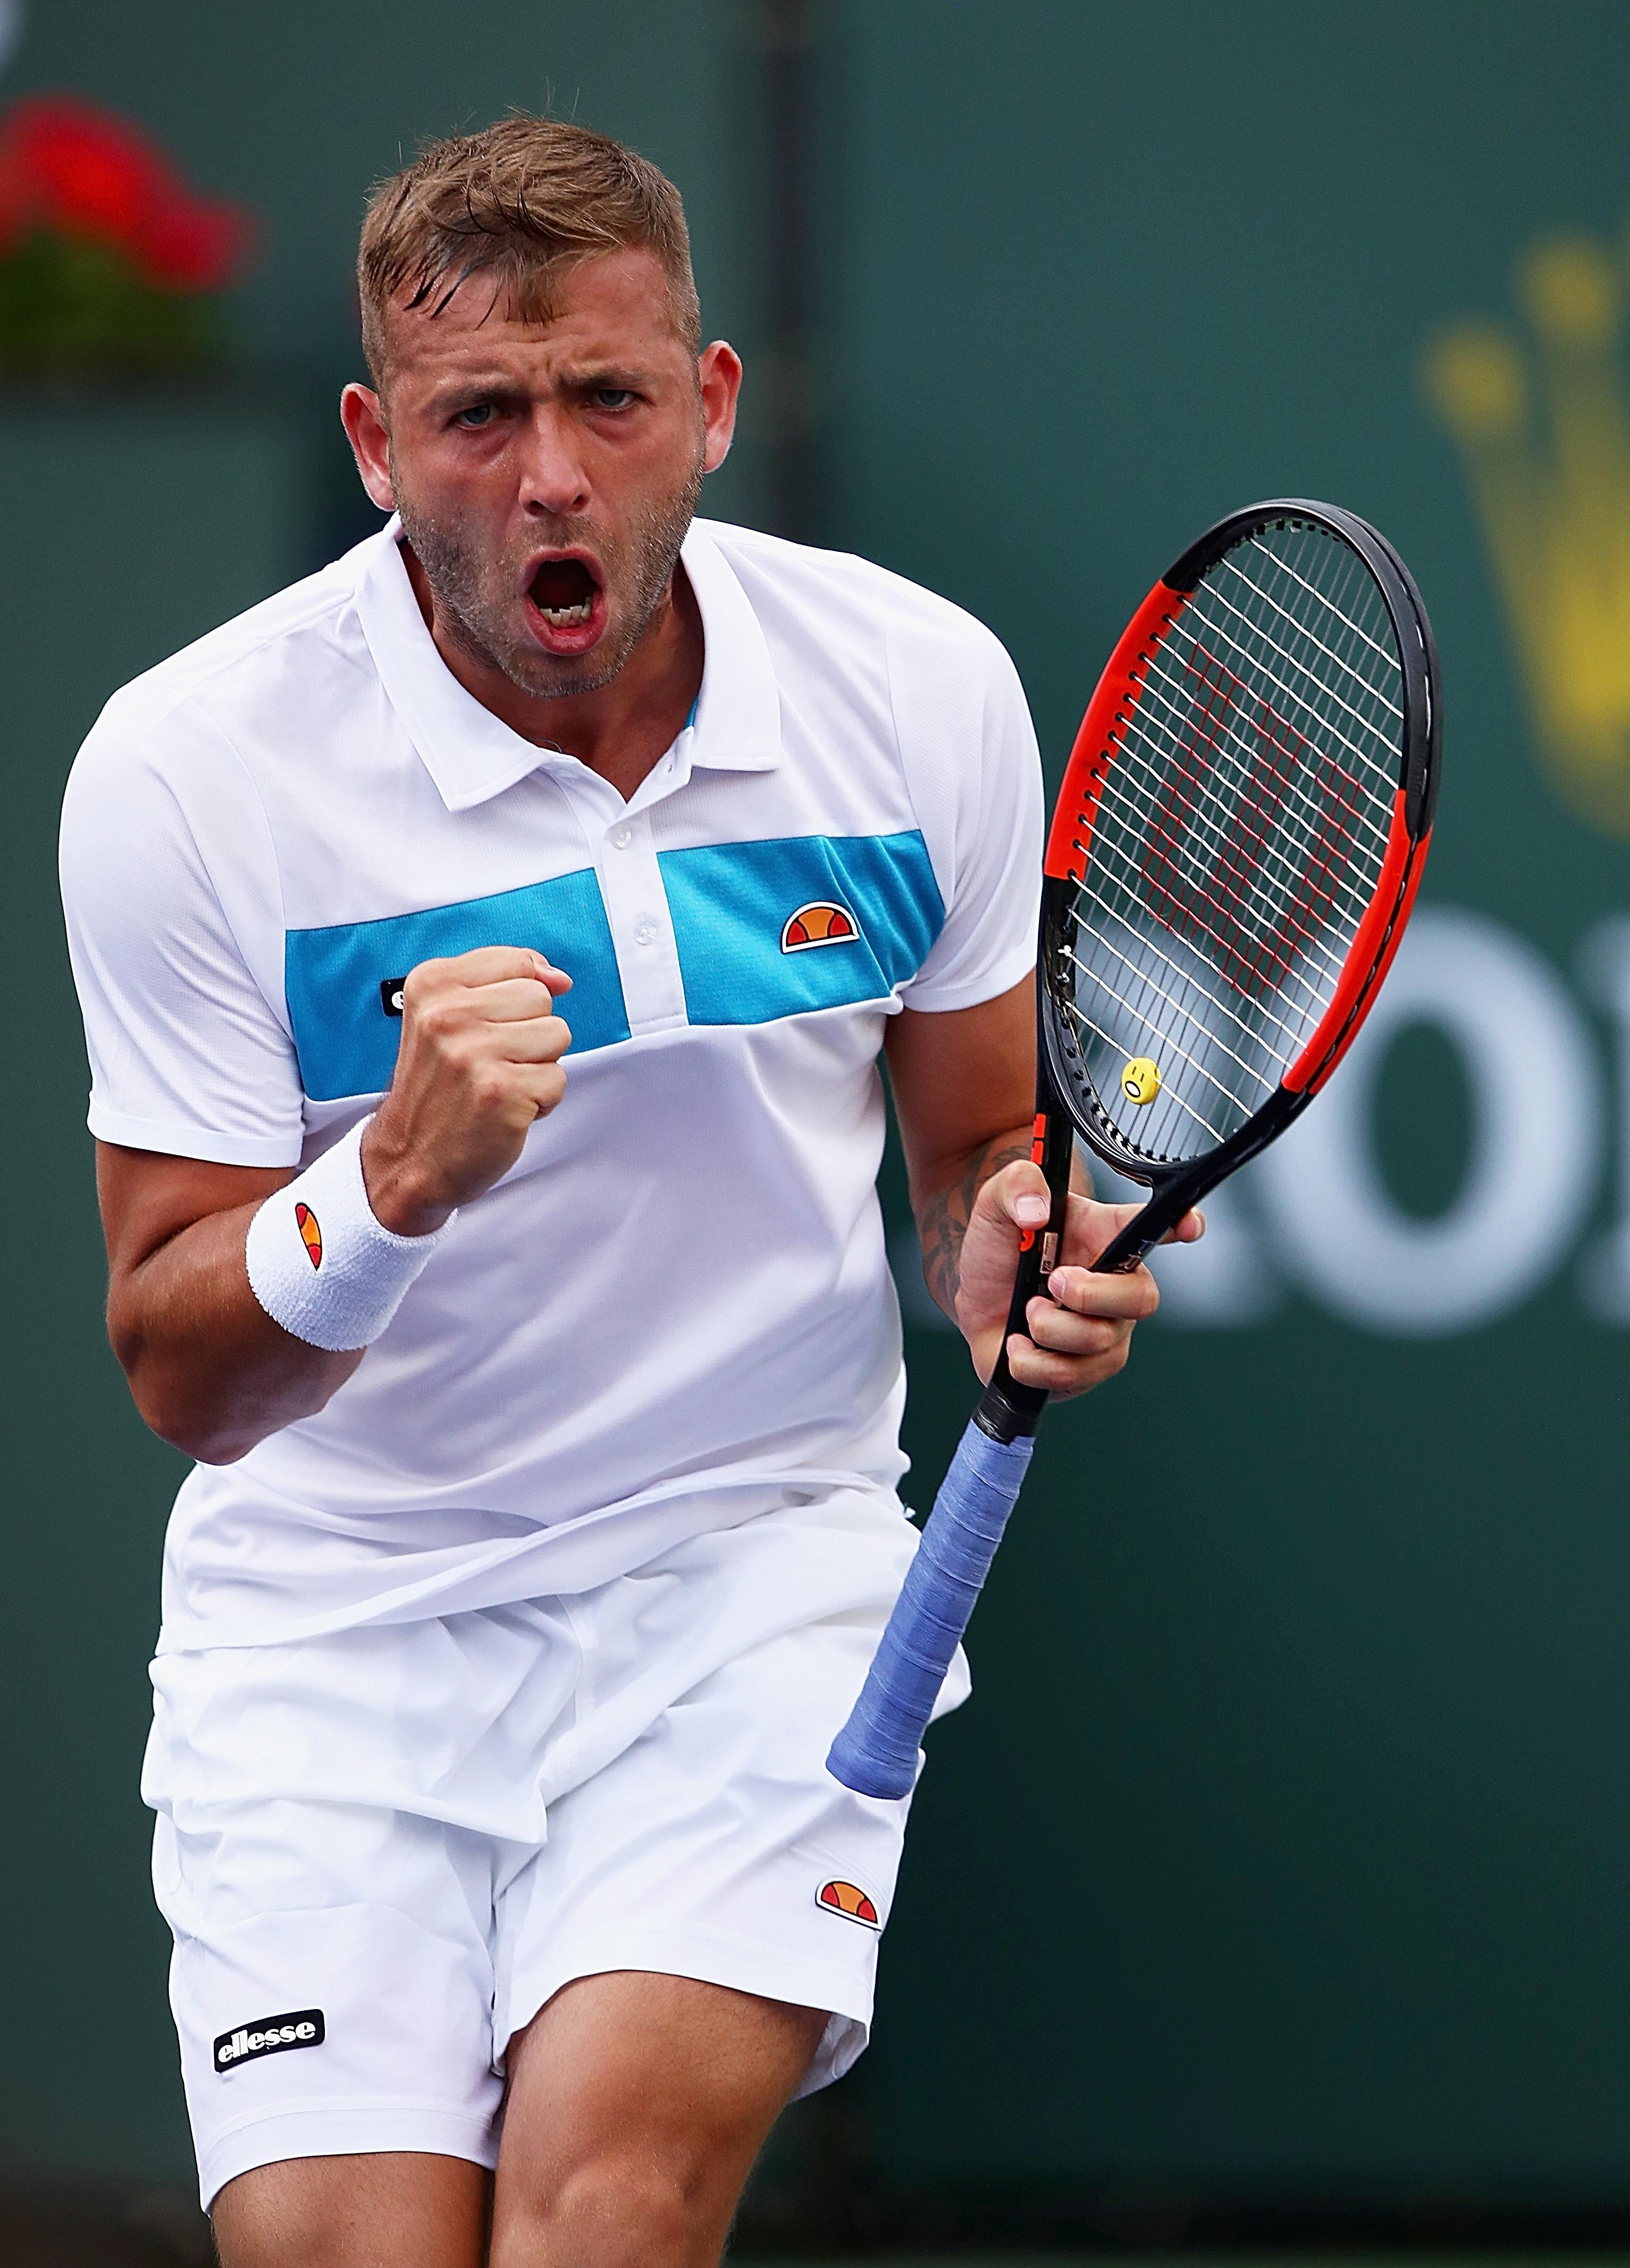 Dan Evans is set to make his return to tennis after a one-year drugs ban